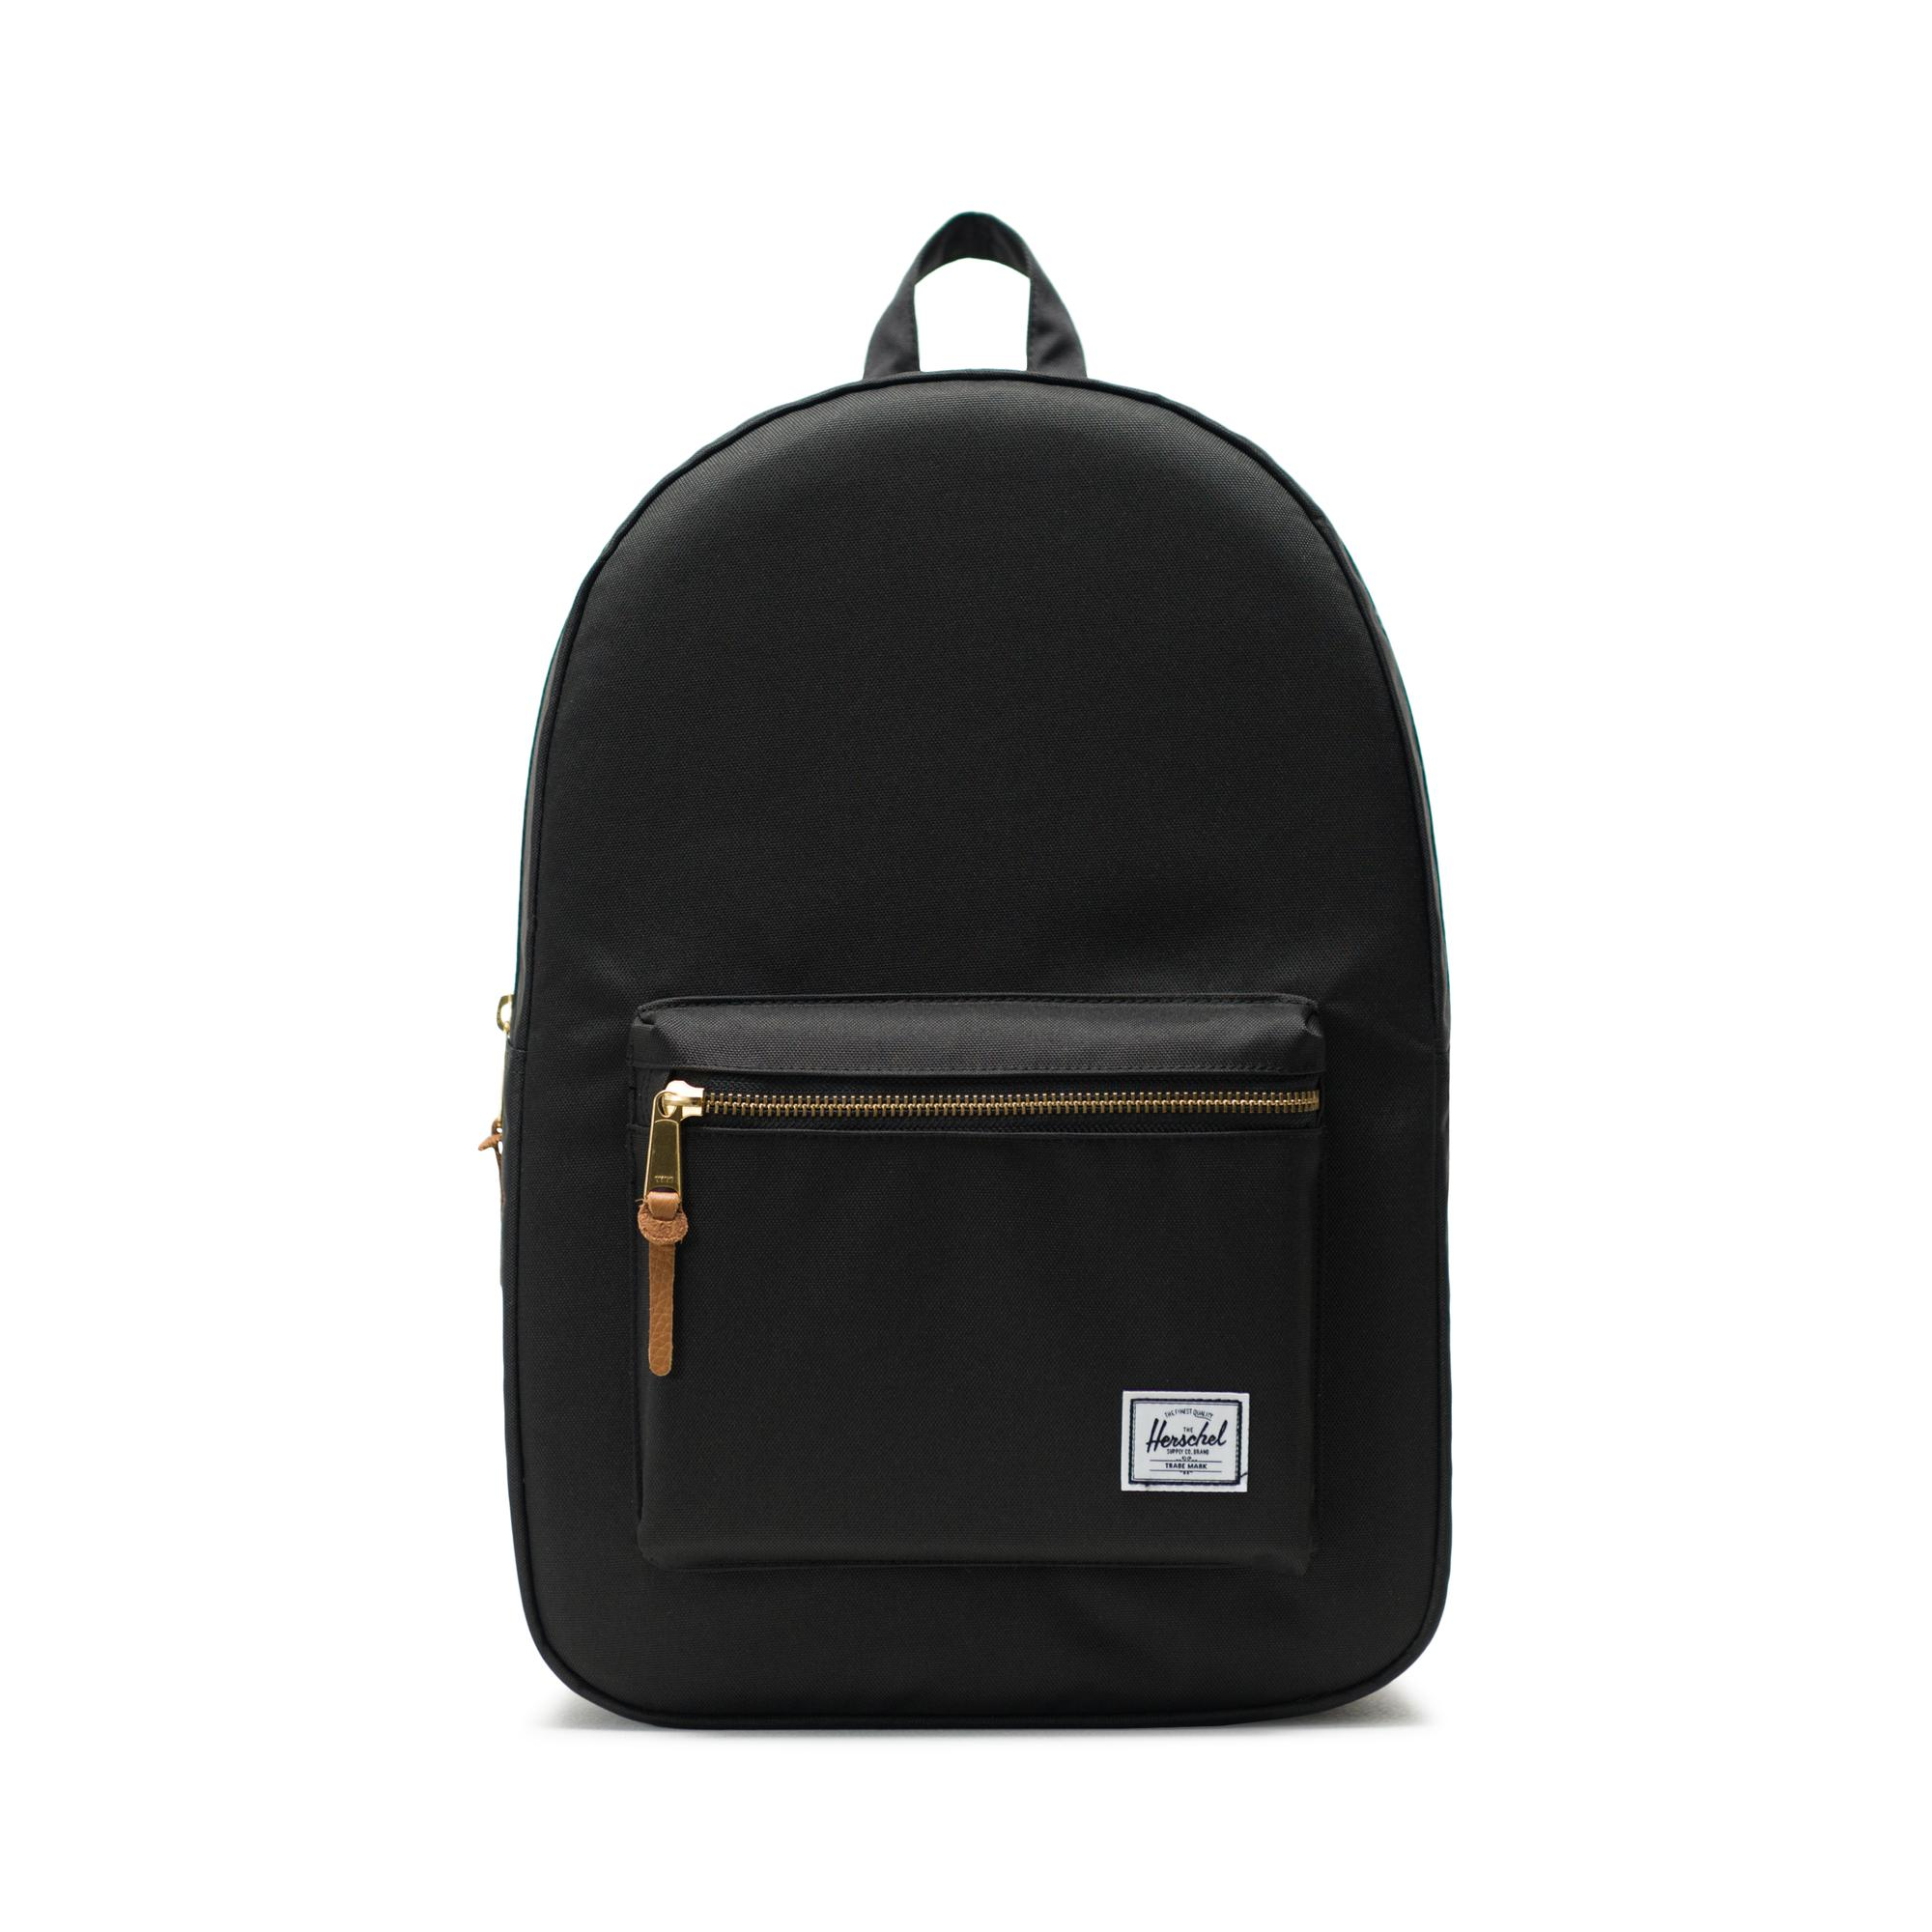 eaf75a8a09 Settlement Backpack